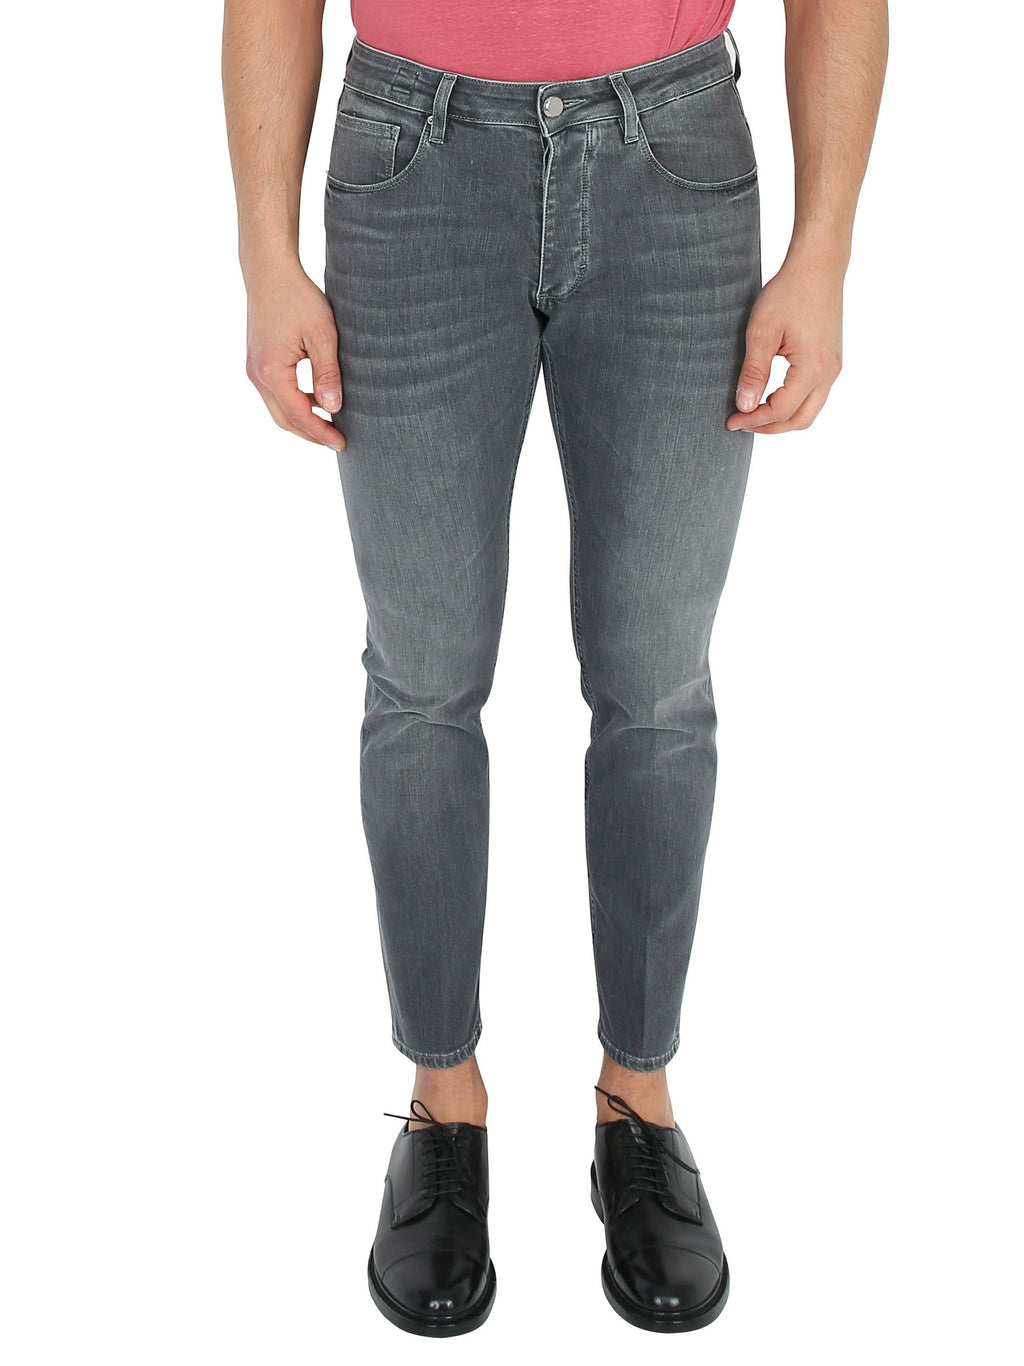 DON THE FULLER San Francisco model skinny fit jeans